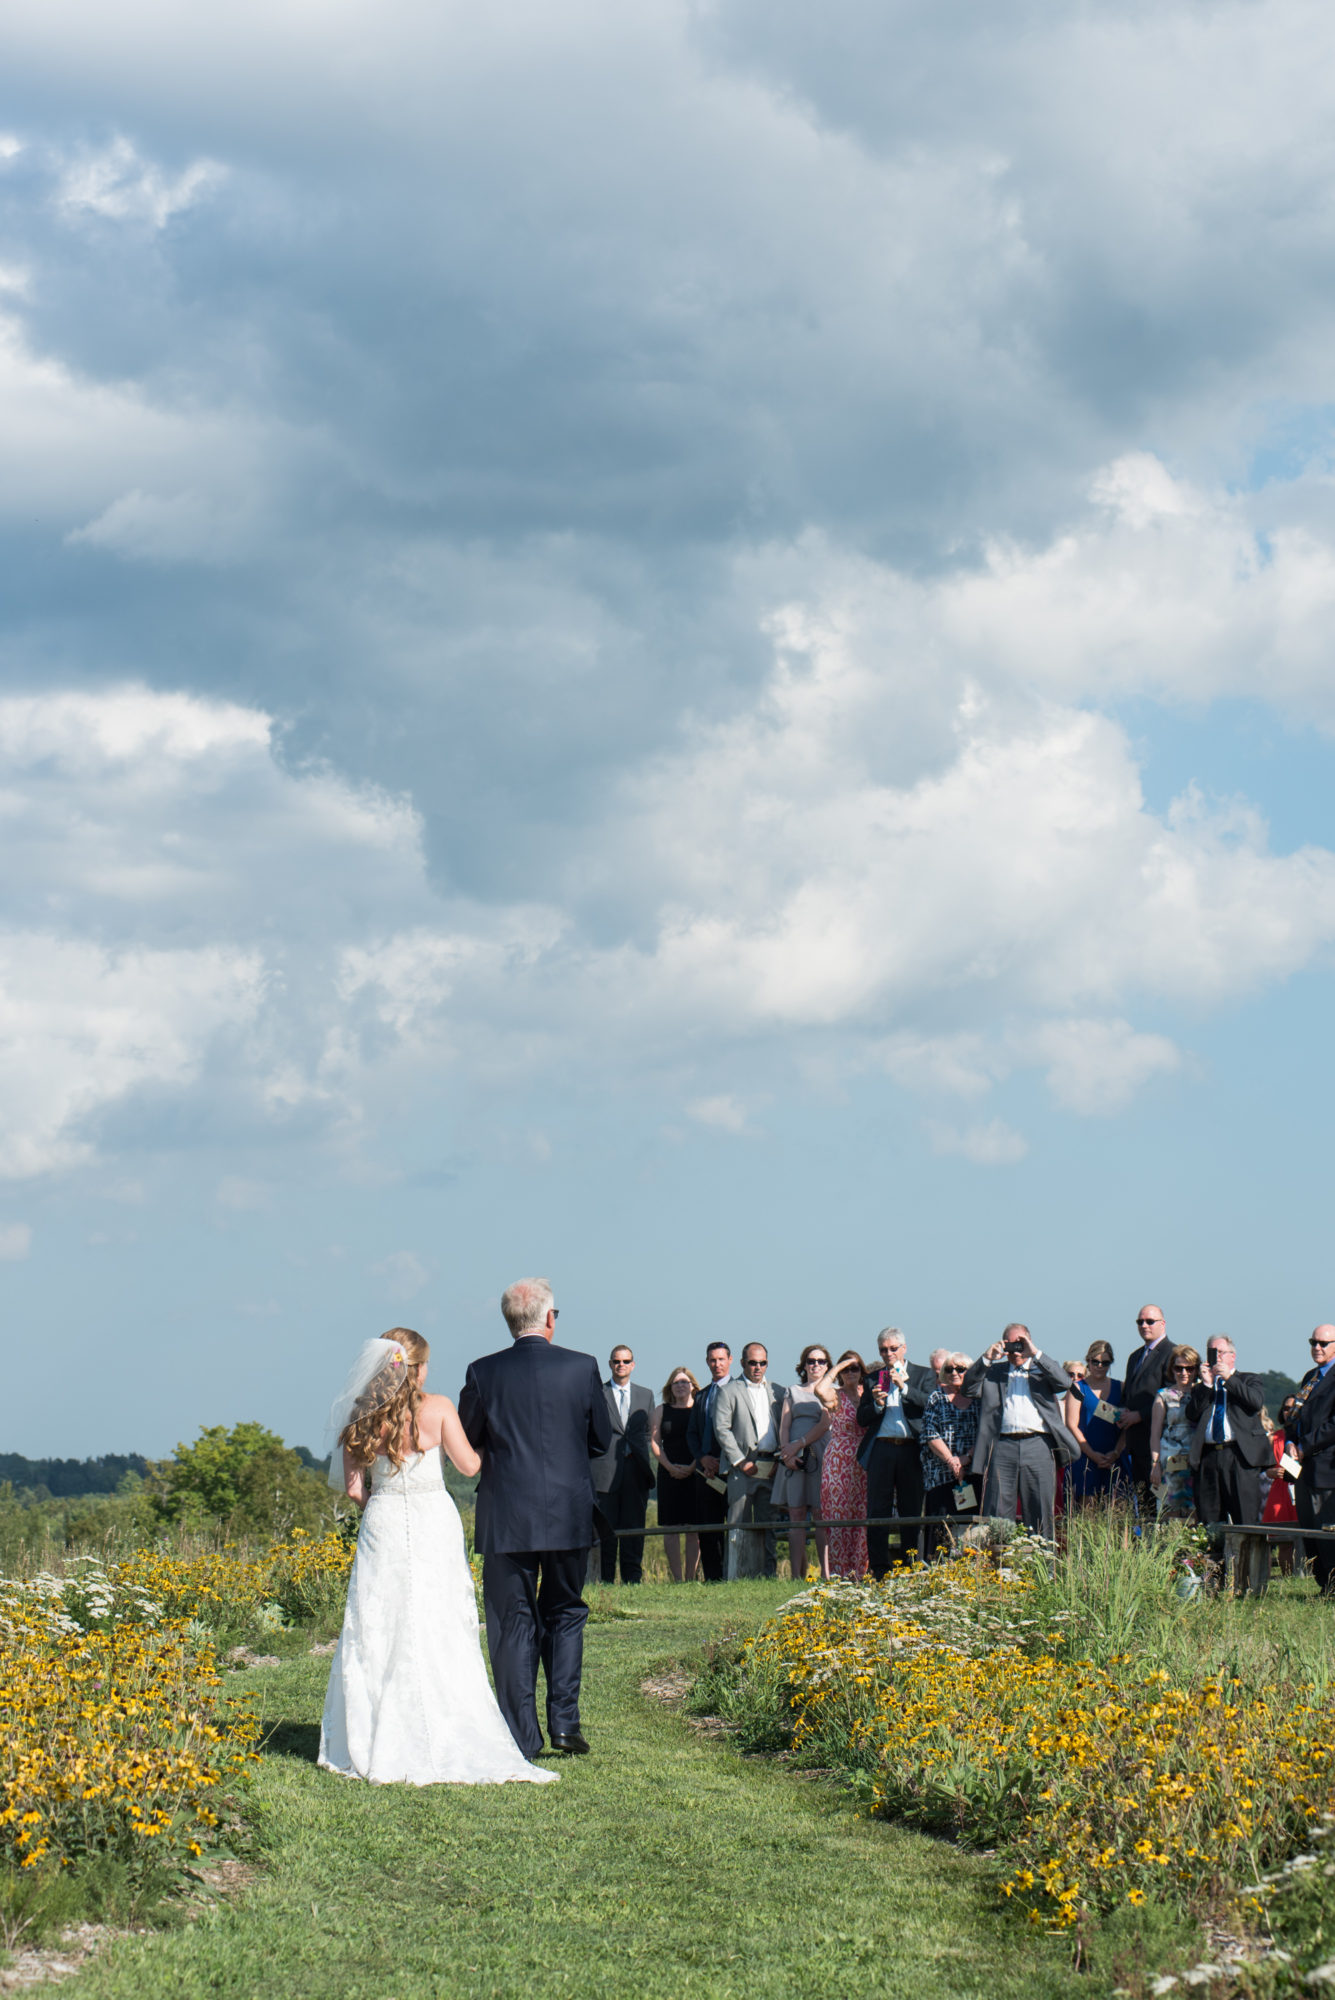 Bride Ceremony South Pond Farms Zsuzsi Pal Photography Wedding